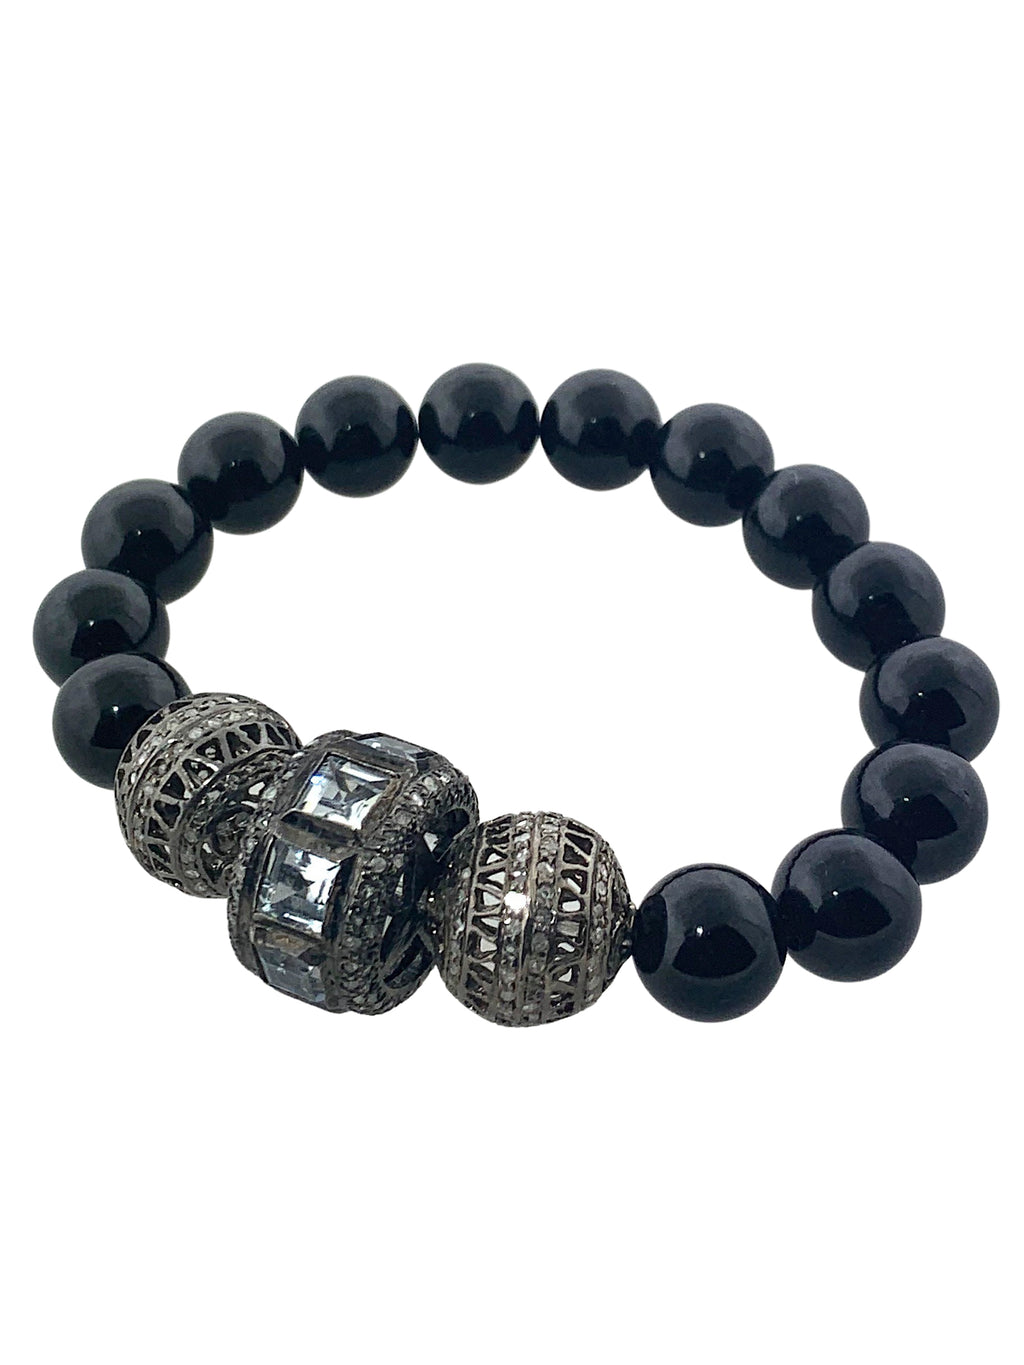 Black Tourmaline with Faceted Aquamarine and Pave Diamond Beads